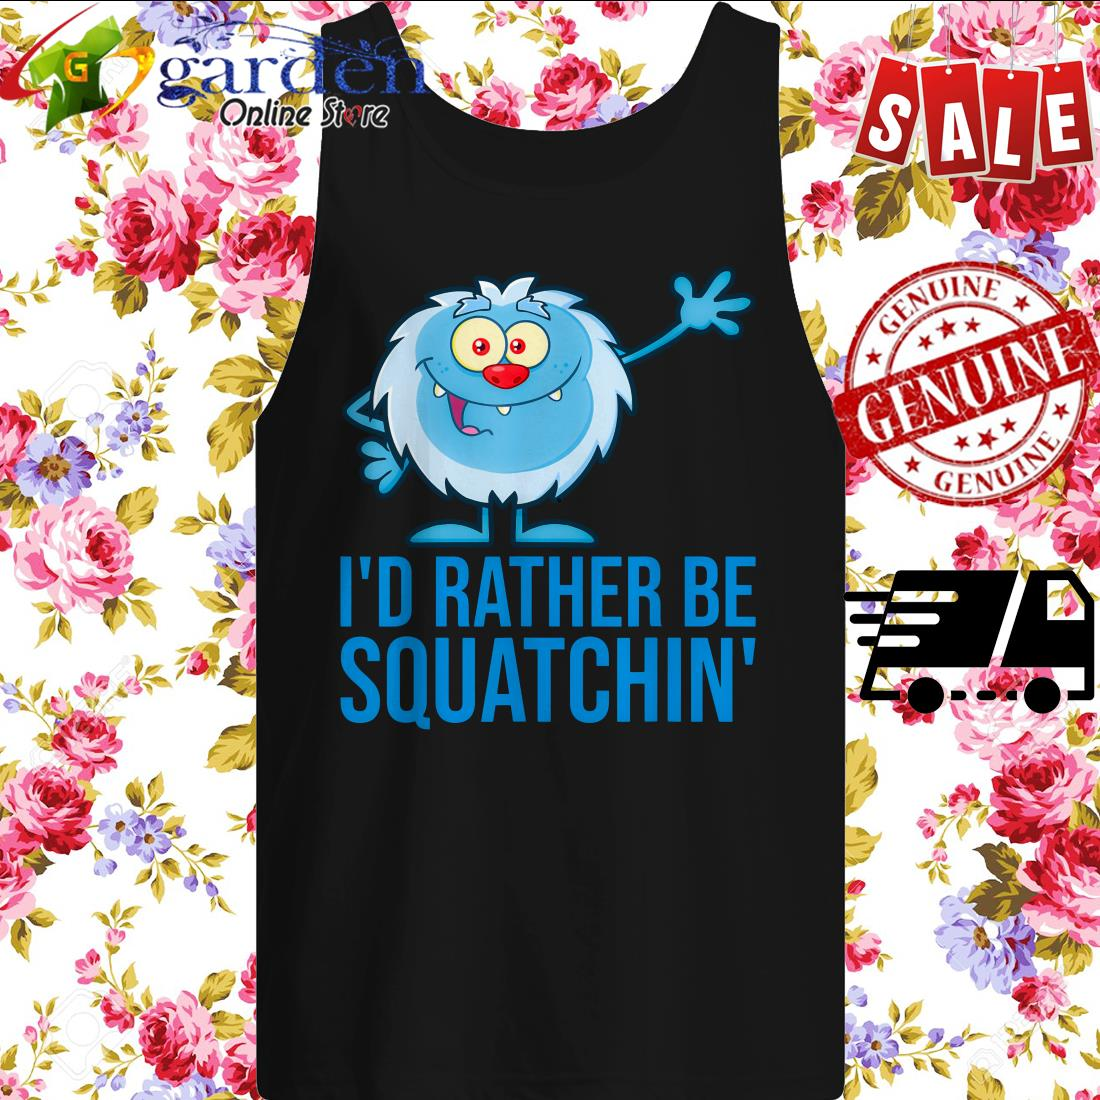 I'D RATHER BE SQUATCHIN' sweater